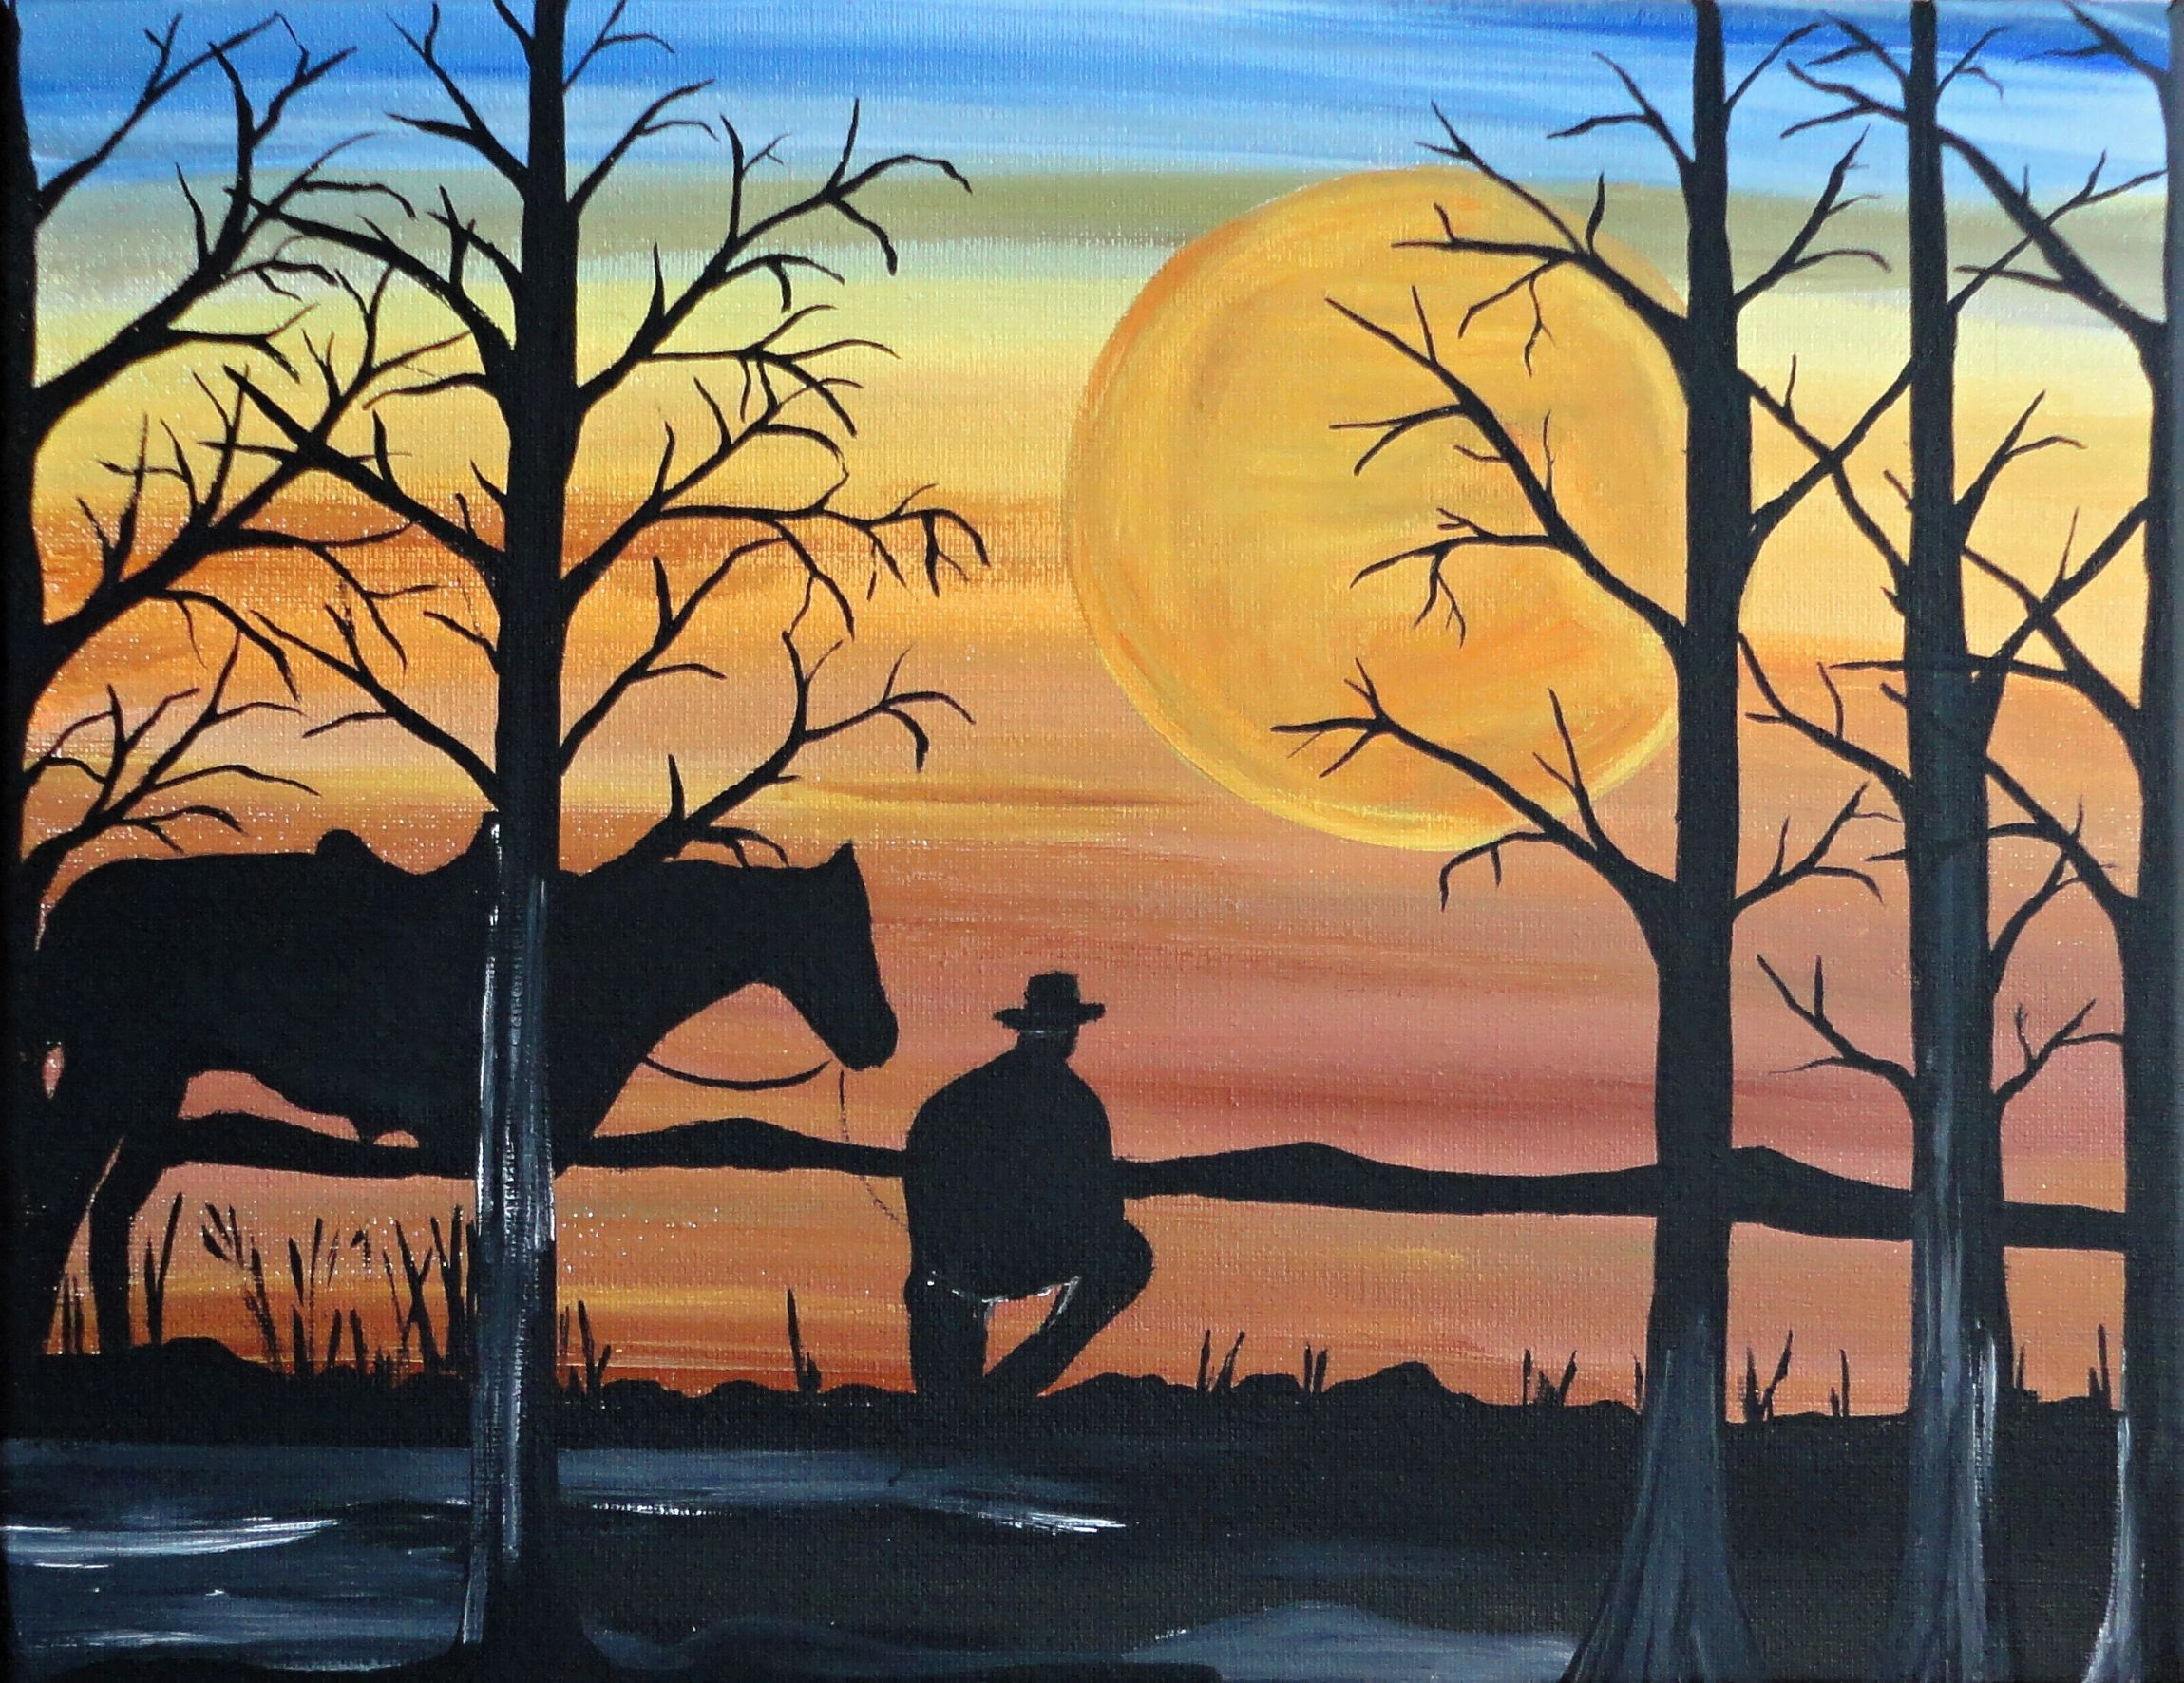 Silhouette painting created with acrylic colors on a ...